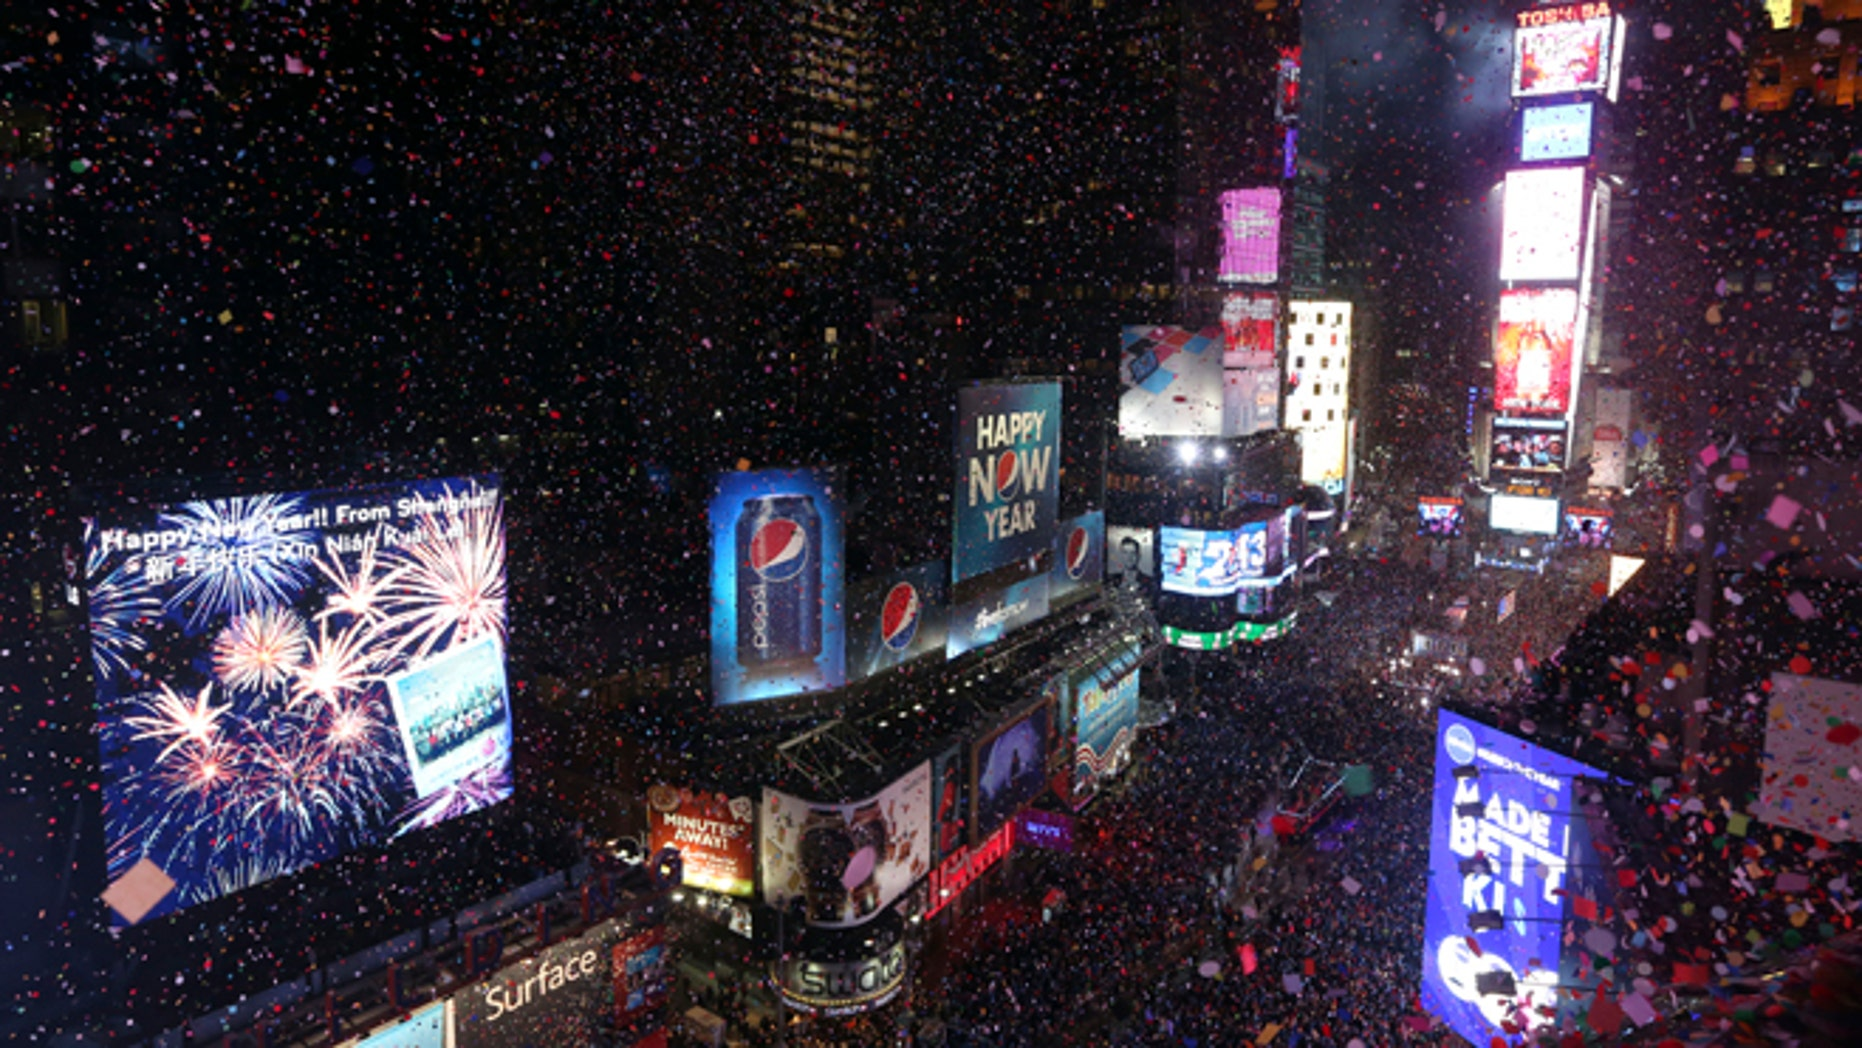 Confetti flies over New York's Times Square after the clock strikes midnight during the New Year's Eve celebration in 2013.